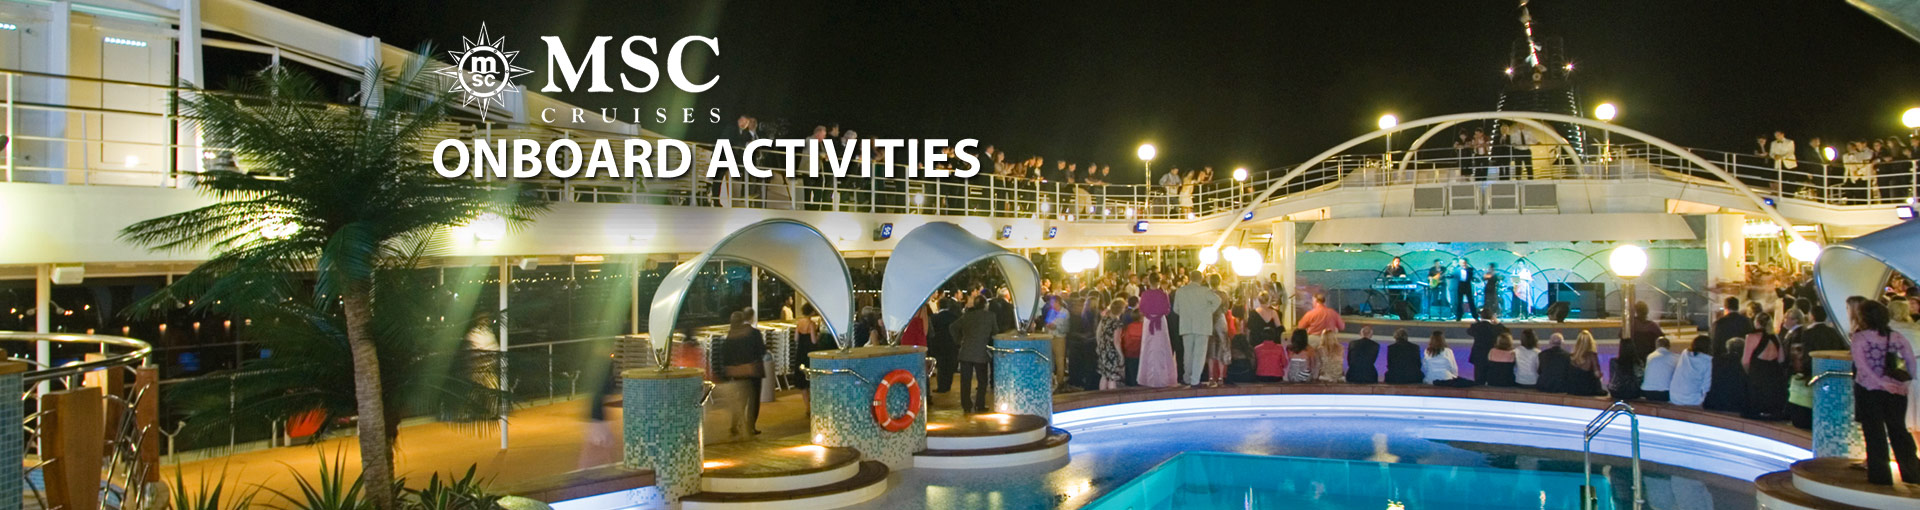 MSC Cruises Onboard Activities